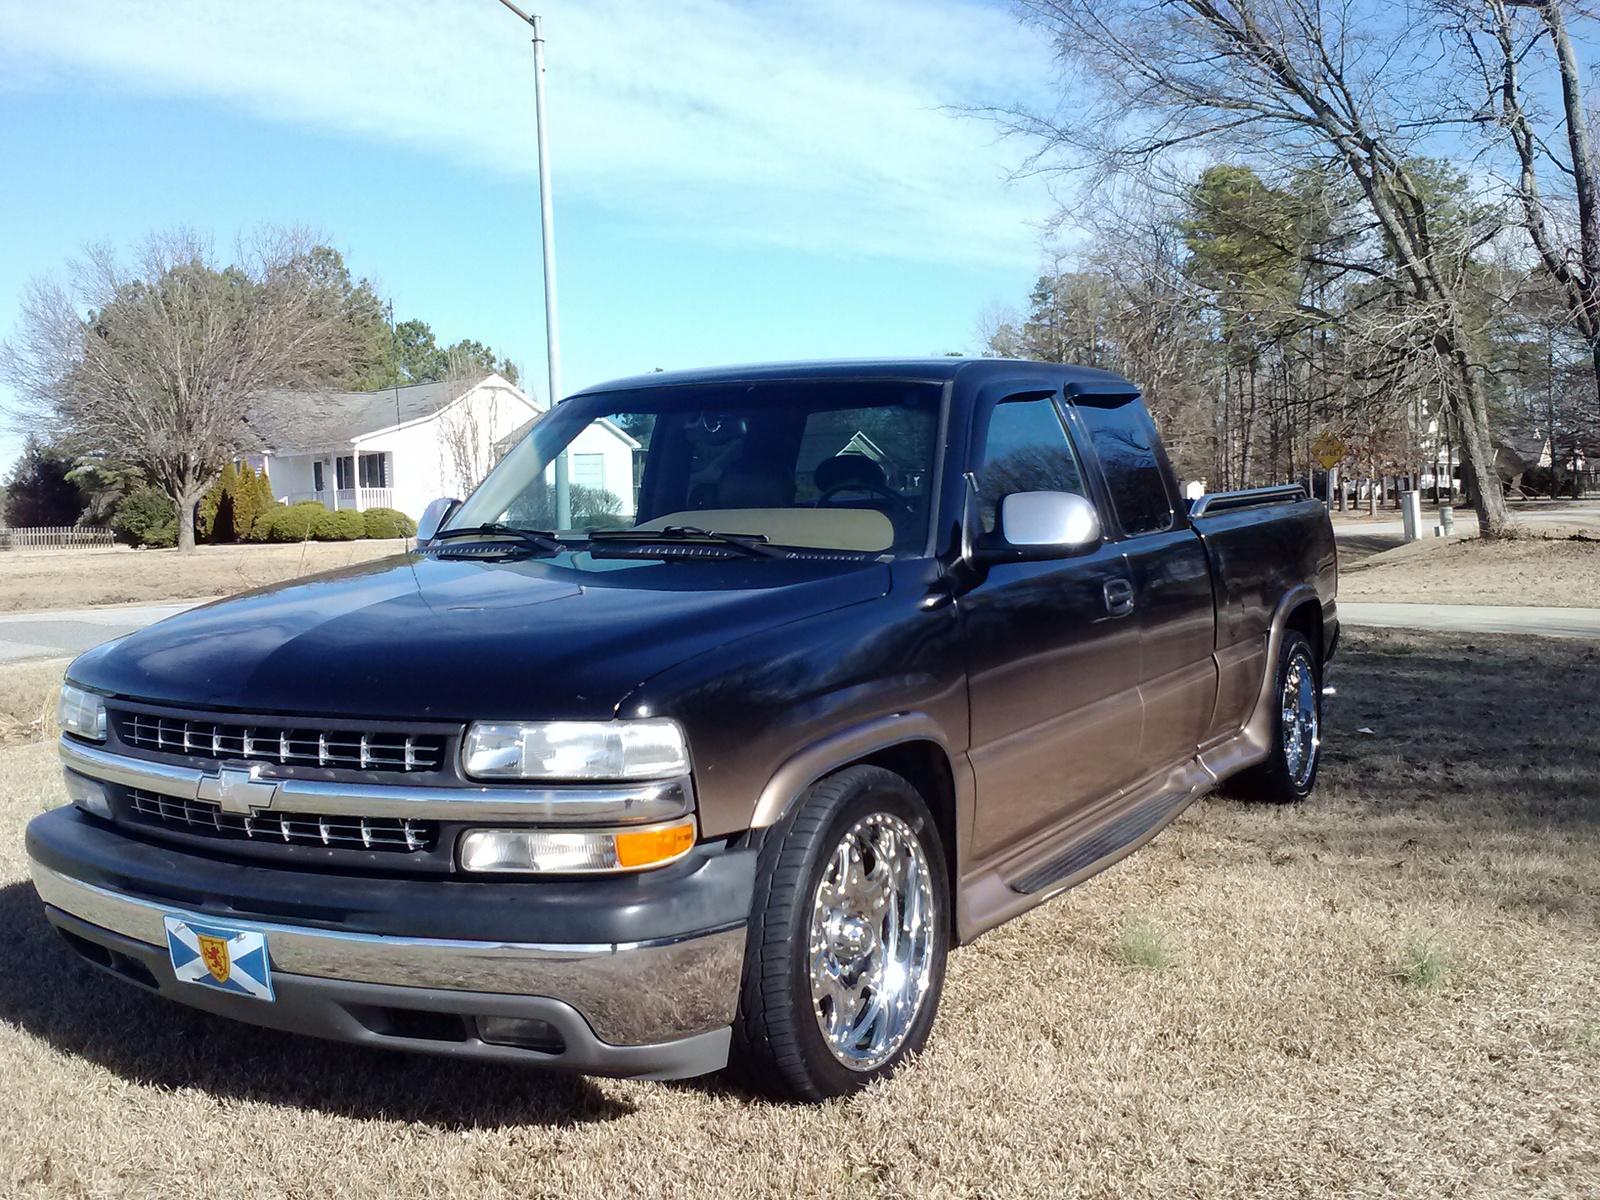 Chevrolet Ss 2014 Price Picture of 2000 Chevrolet Silverado 1500 LT Ext Cab Short Bed 2WD ...